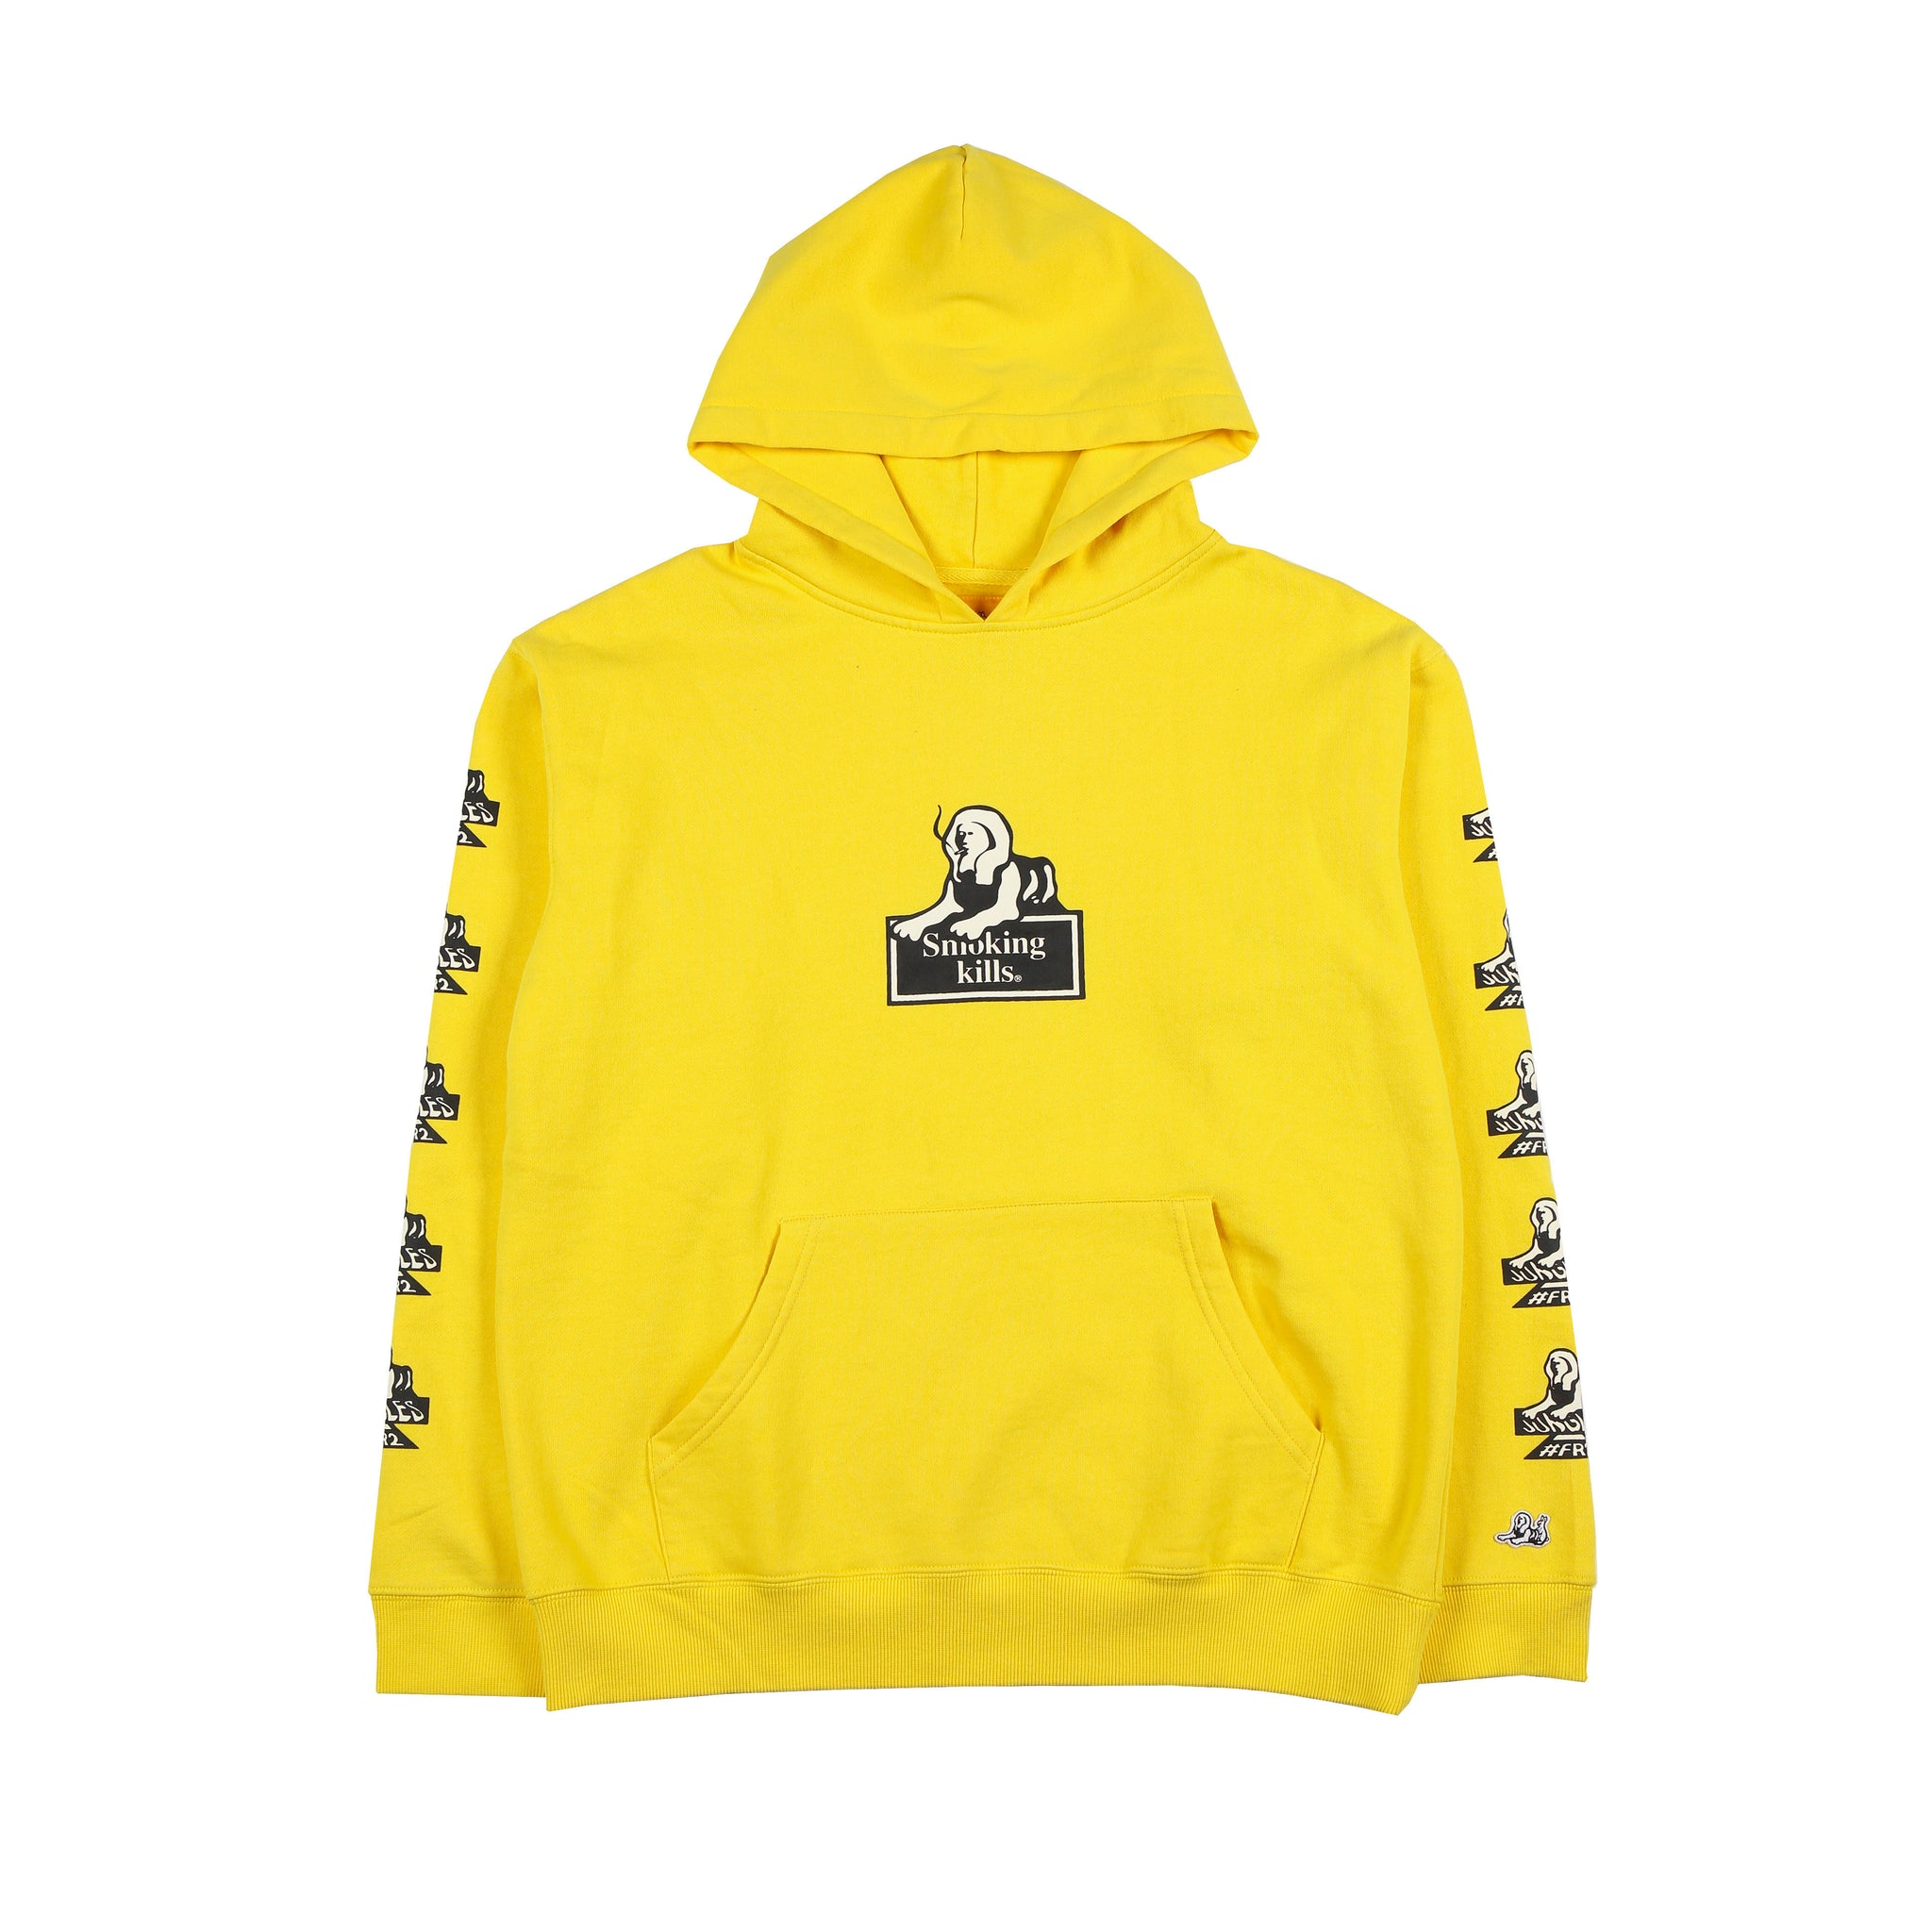 Jungles/Fxxking Rabbits - Smoking Kills hoodie yellow